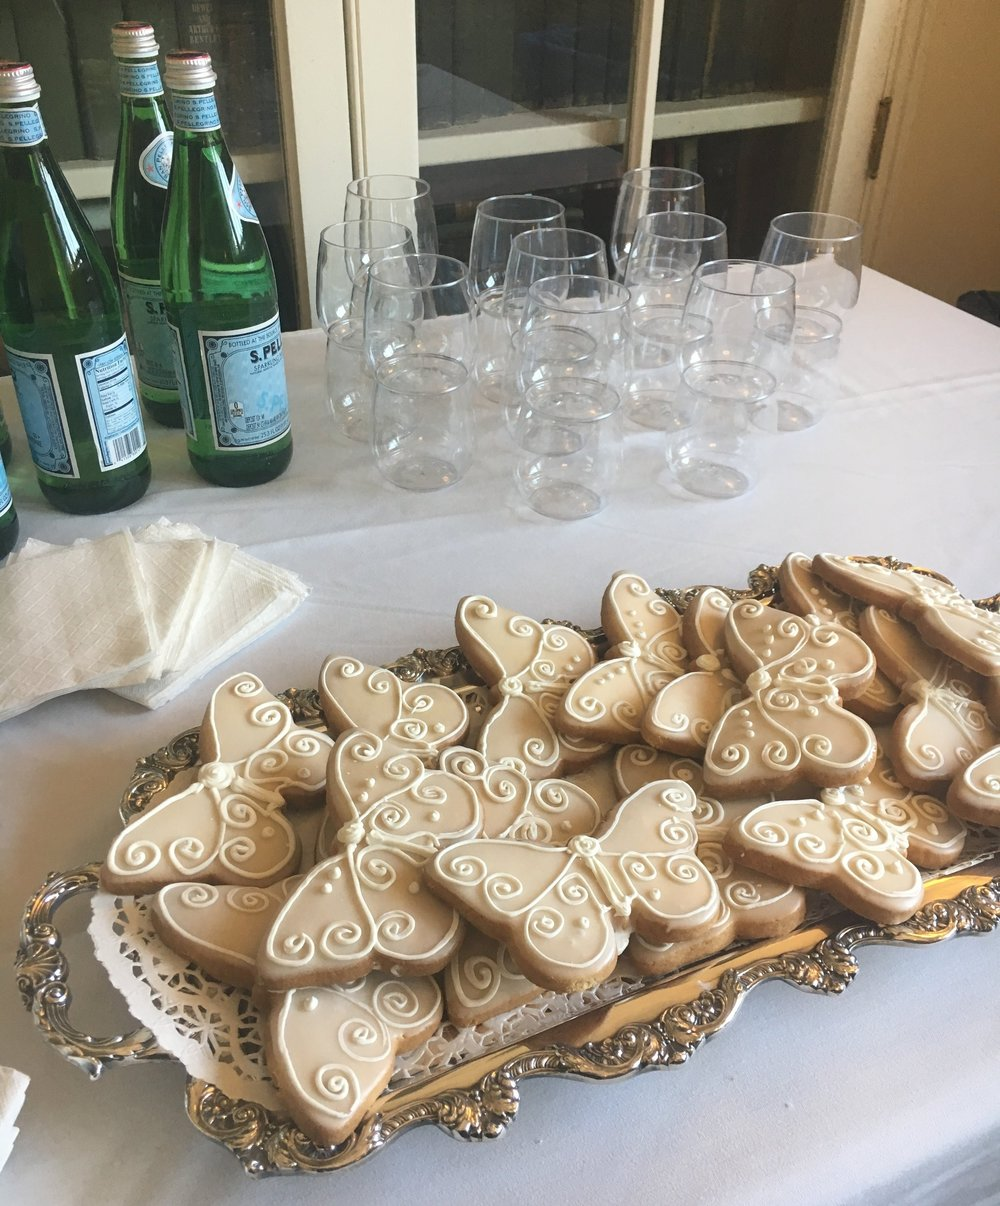 The food doesn't have to be complicated. We're fond of serving sparkling water, tea, coffee and butterfly cookies.